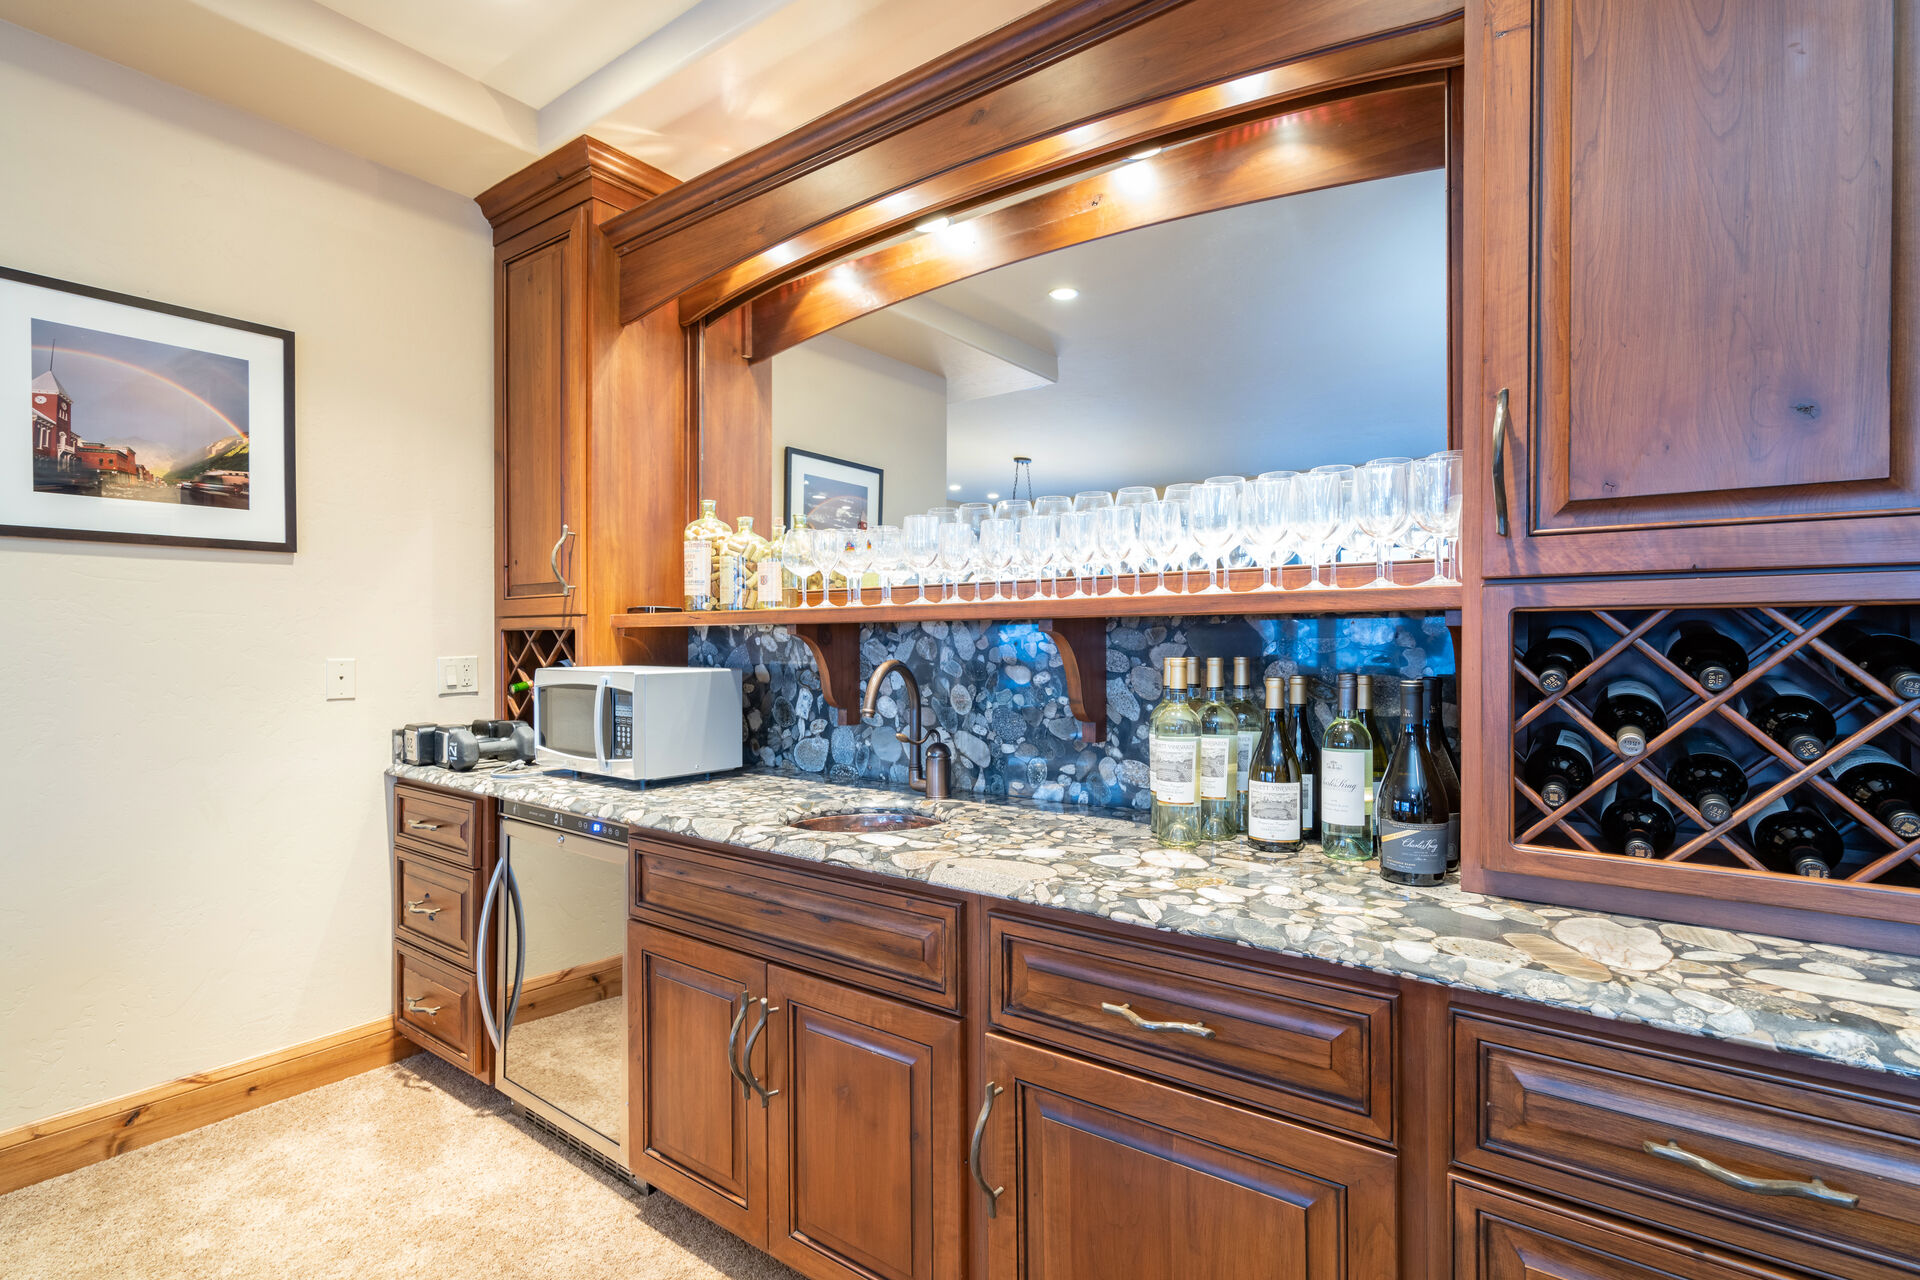 Private wet bar with plenty of glasses and drink options.